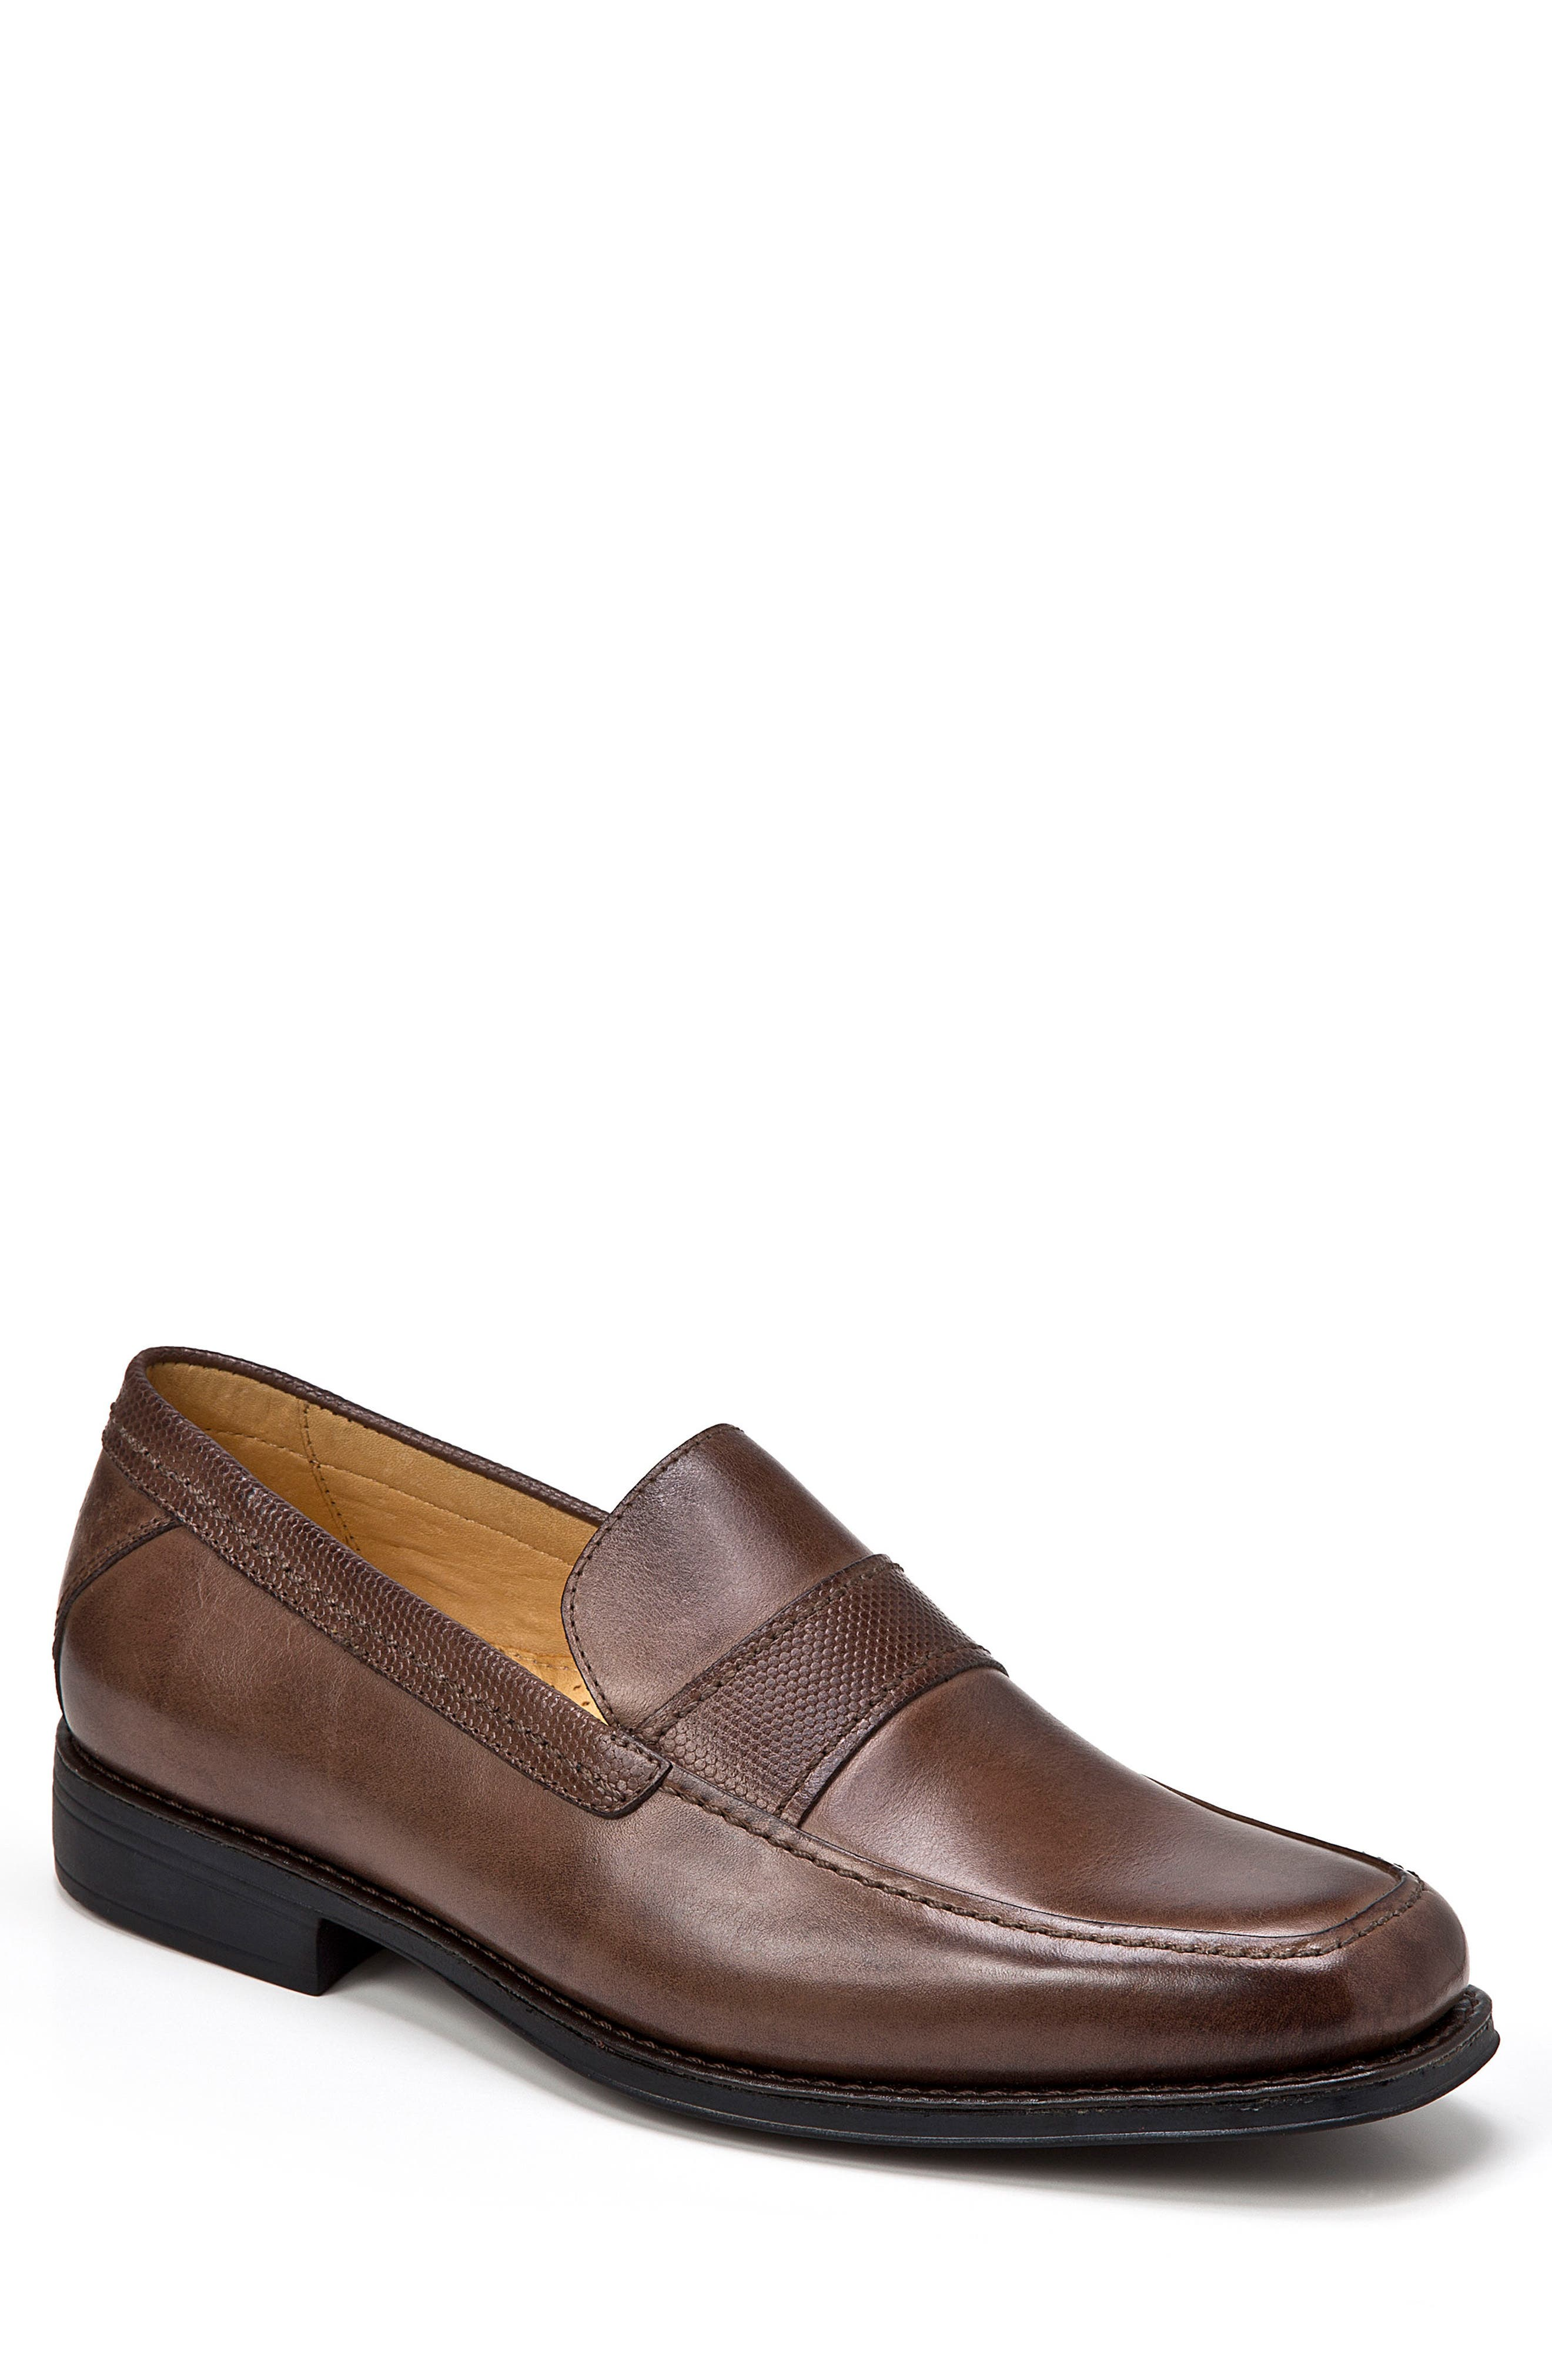 Sandro Moscoloni Edward Loafer - Brown